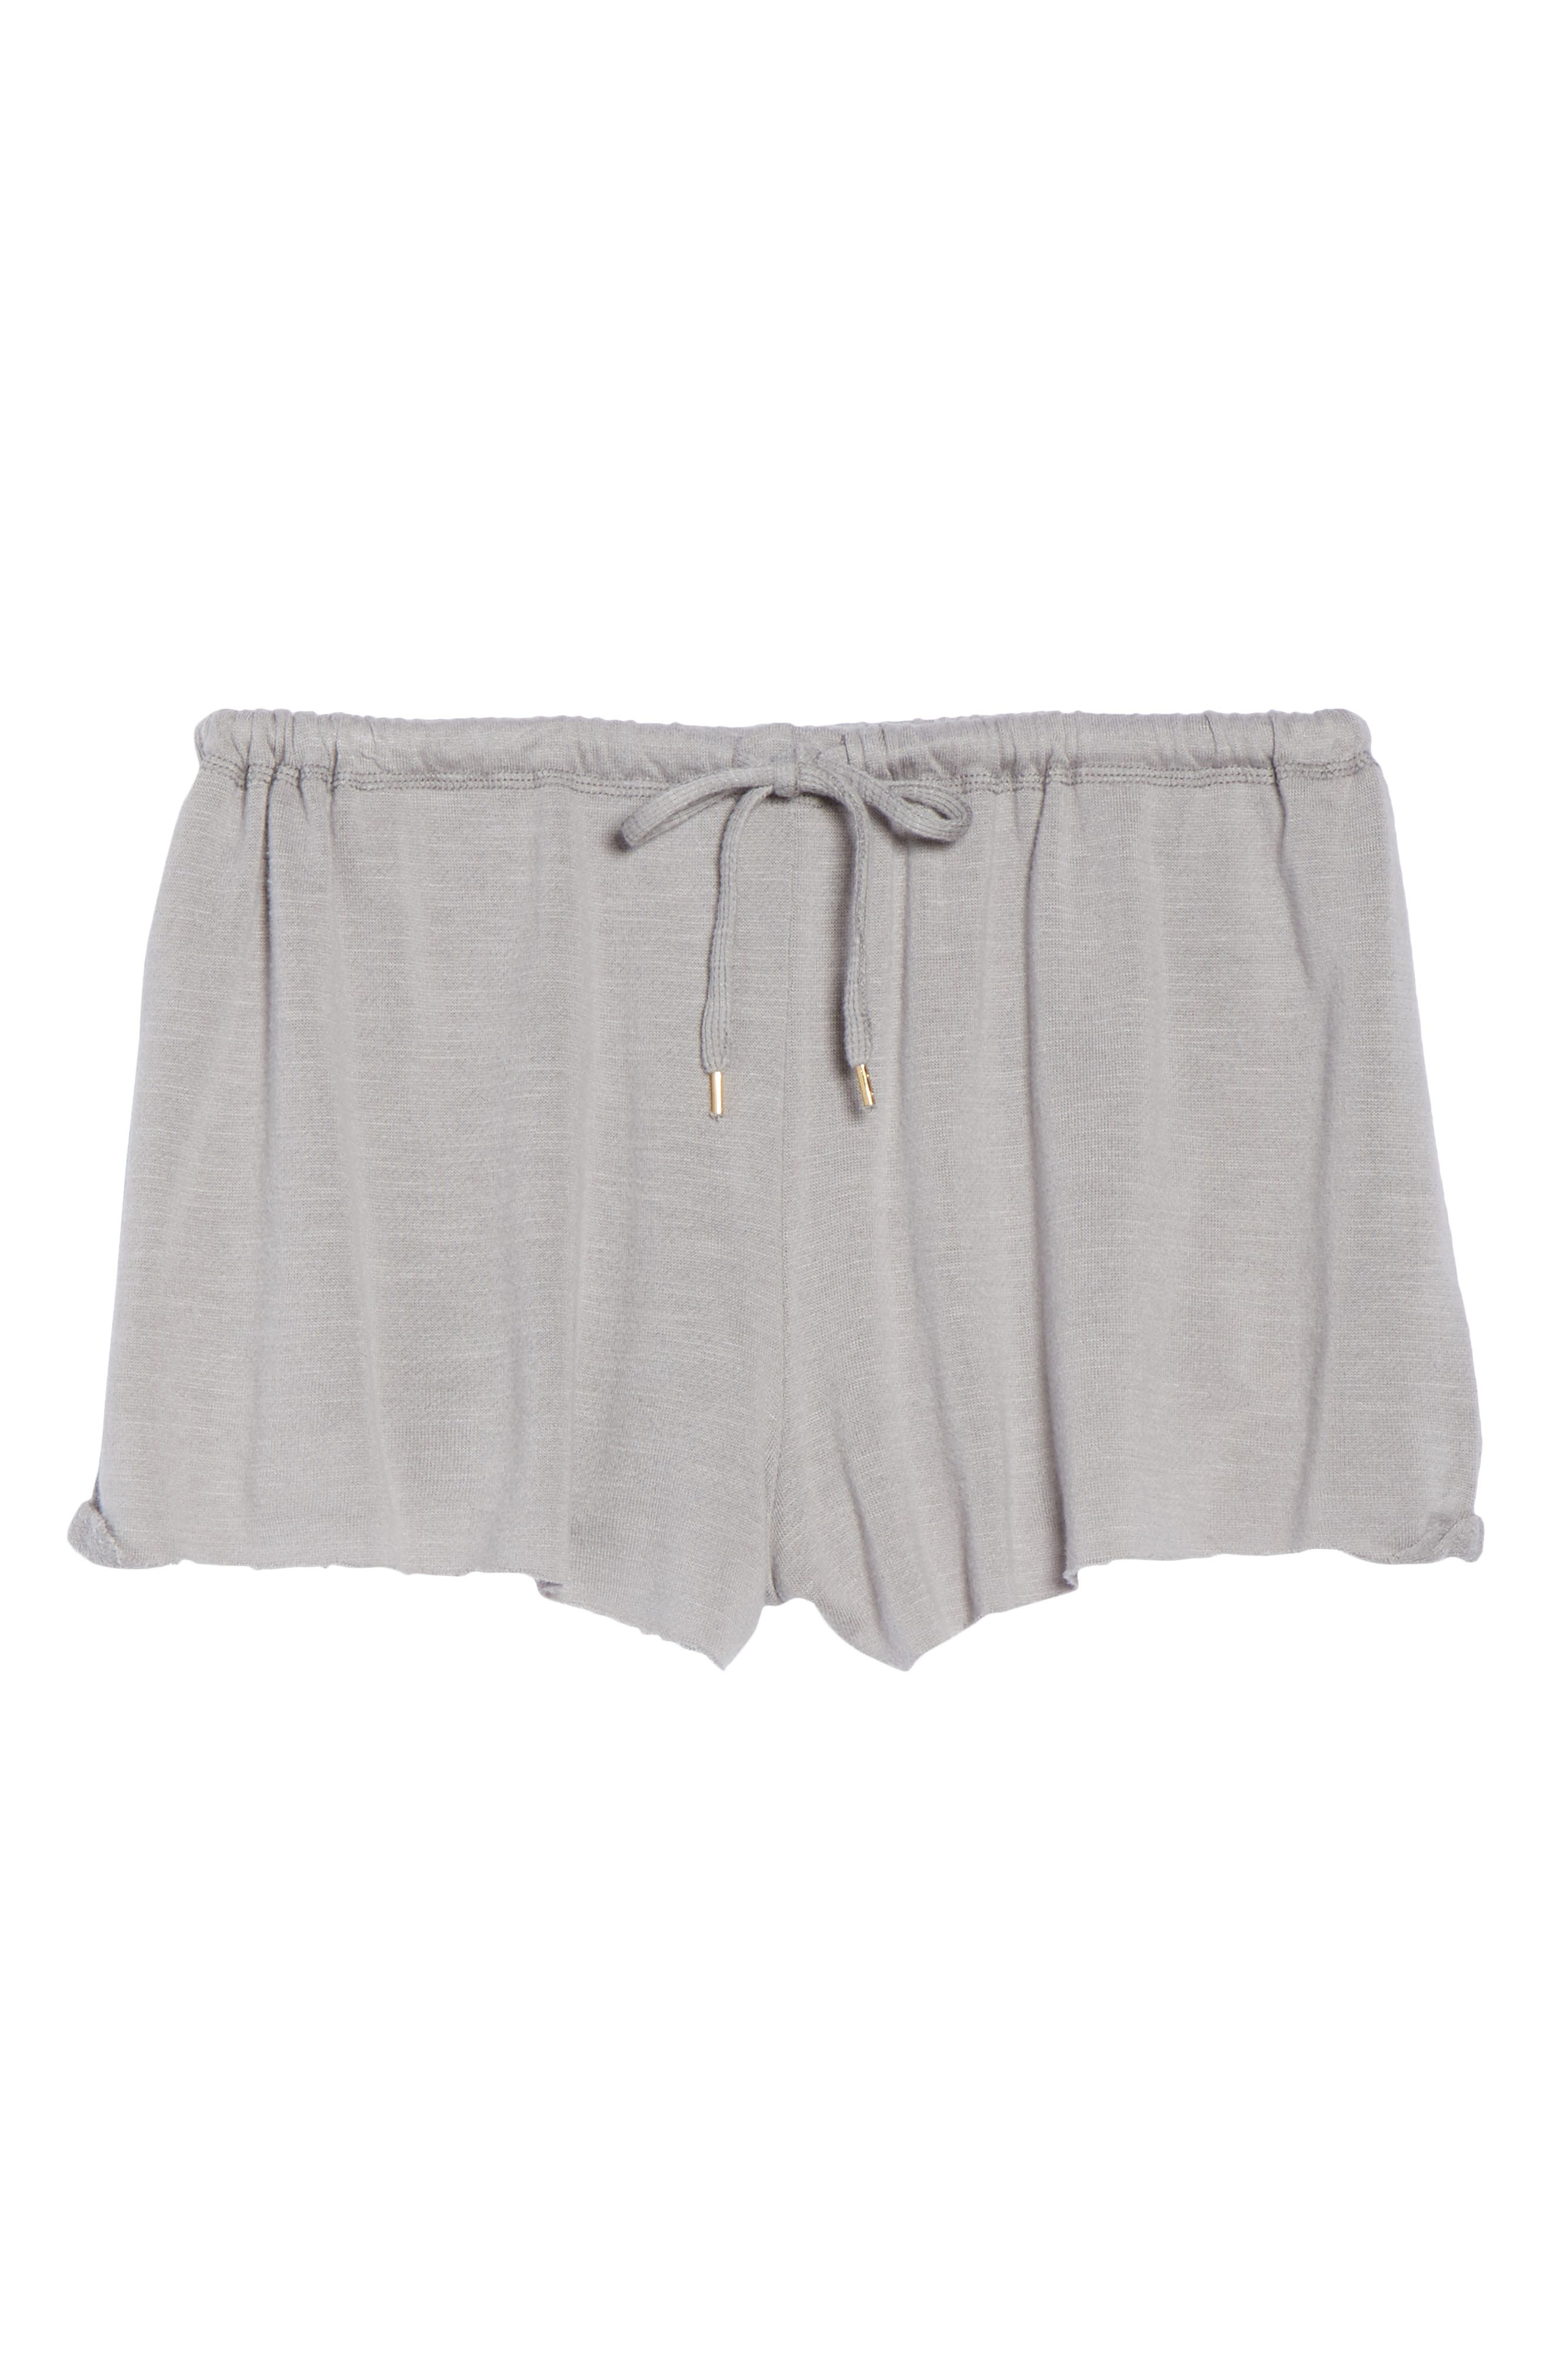 French Terry Lounge Shorts,                             Alternate thumbnail 7, color,                             Katana